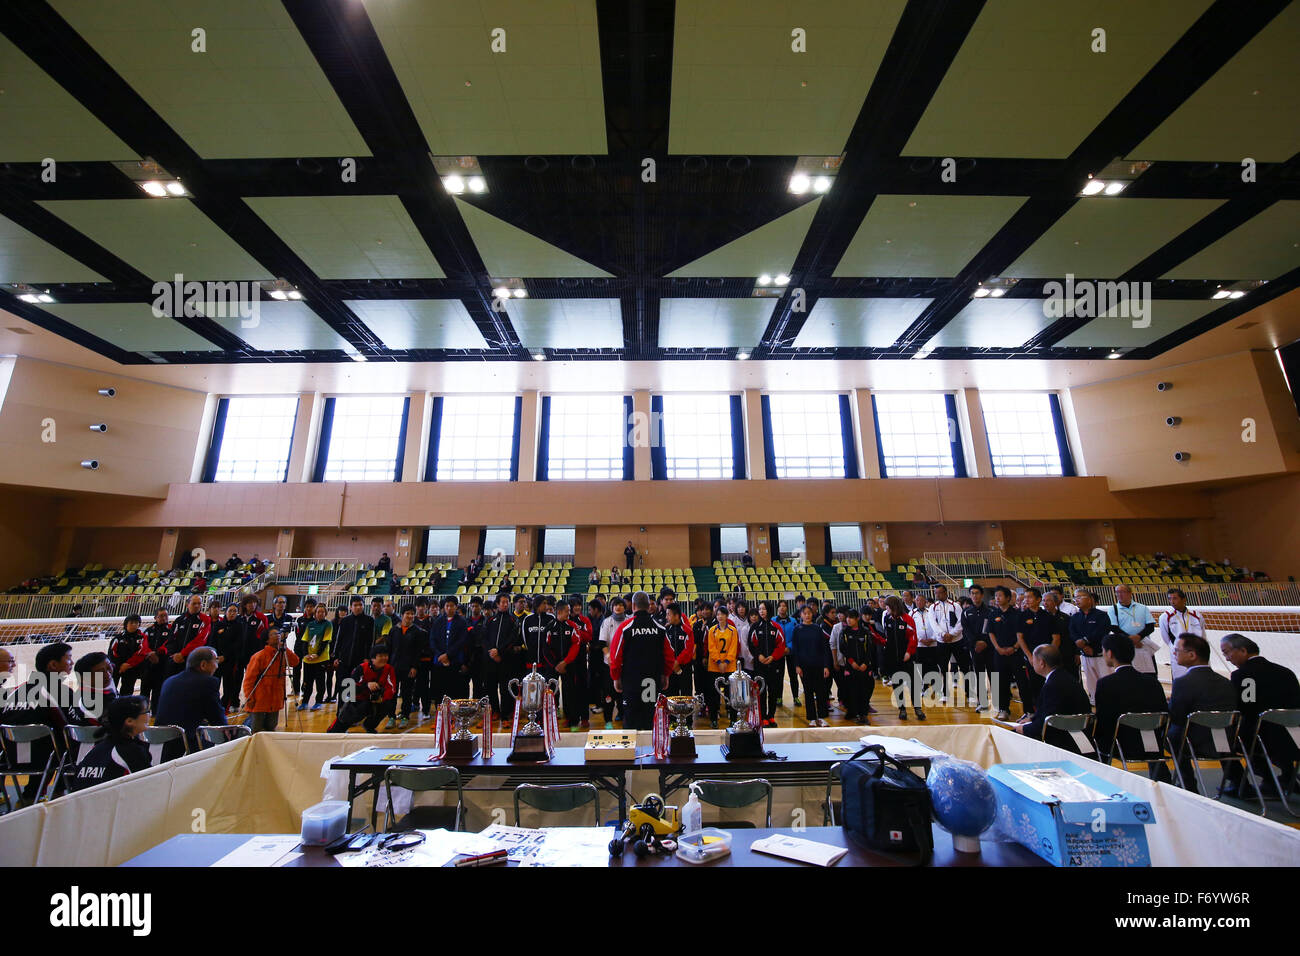 Ohme City general gymnasium, Tokyo, Japan. 21st Nov, 2015. General View, NOVEMBER 21, 2015 - Goalball : 2015 Japan Goalball Championships Opening Ceremony at Ohme City general gymnasium, Tokyo, Japan. Credit:  Shingo Ito/AFLO SPORT/Alamy Live News Stock Photo